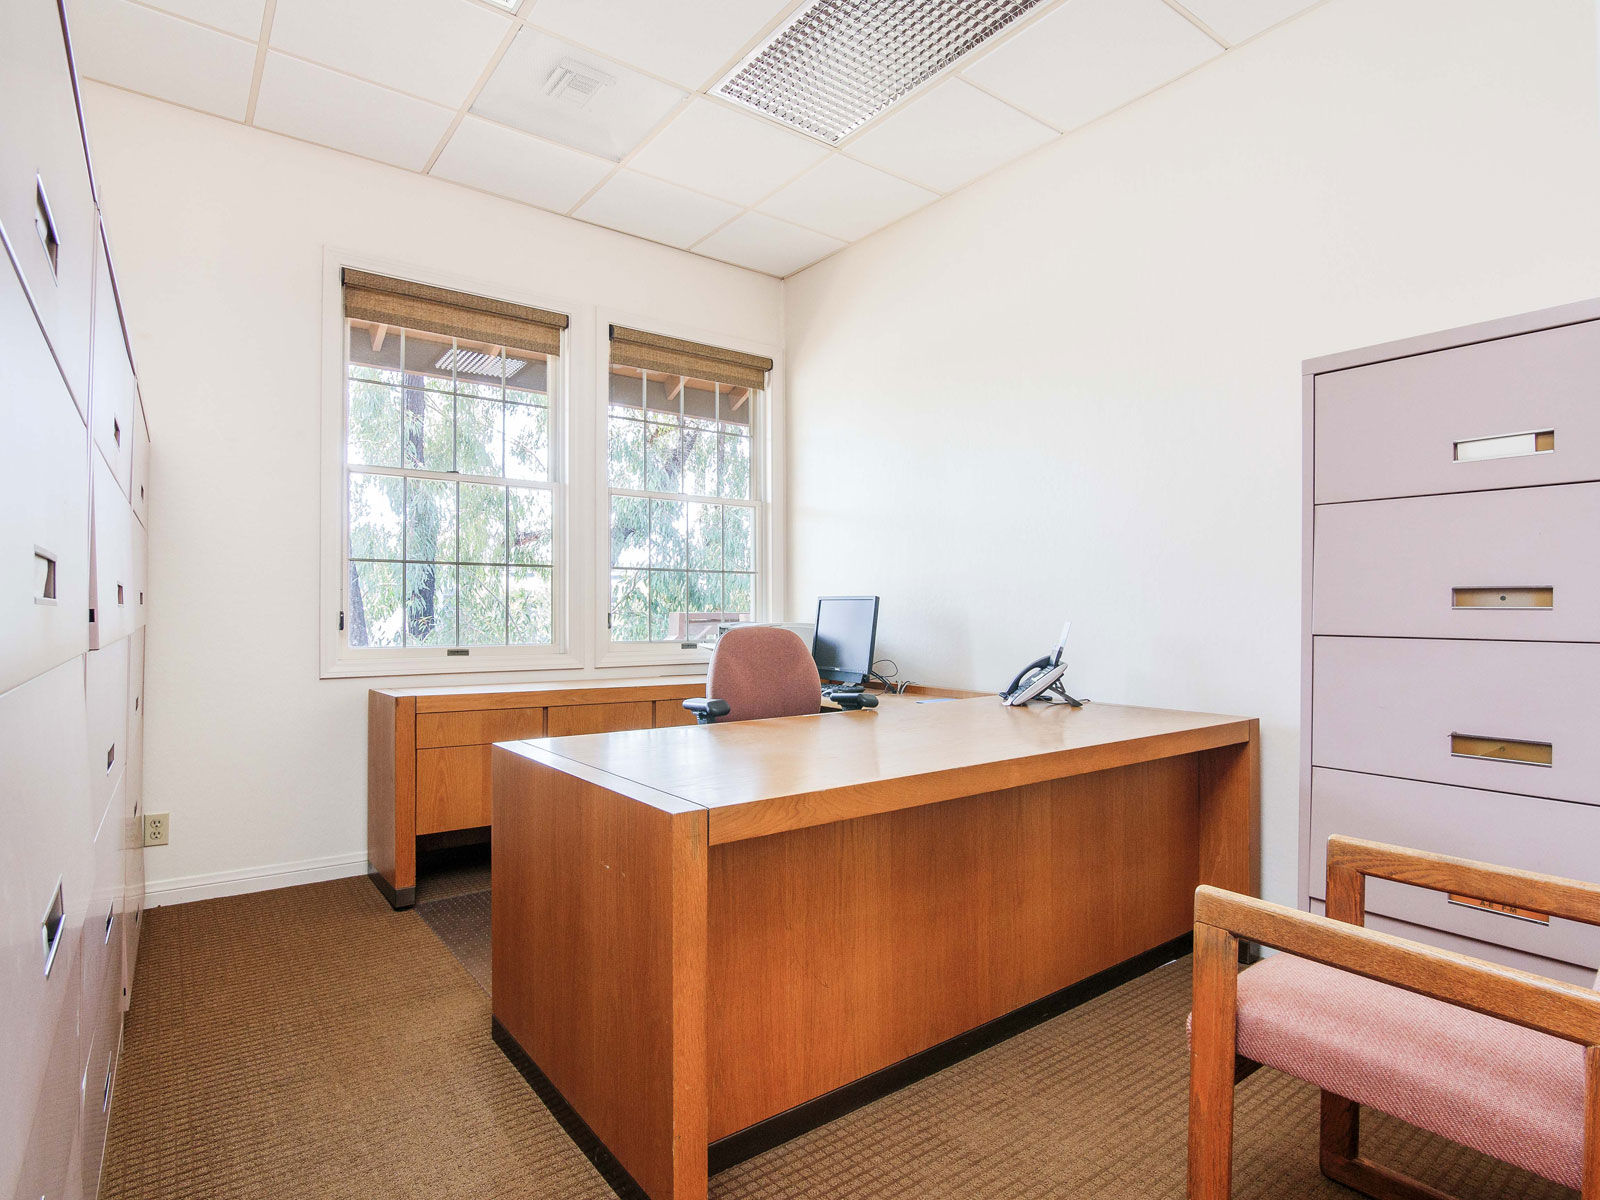 316-s-melrose-vista-ca-executive-office-for-lease-203-2